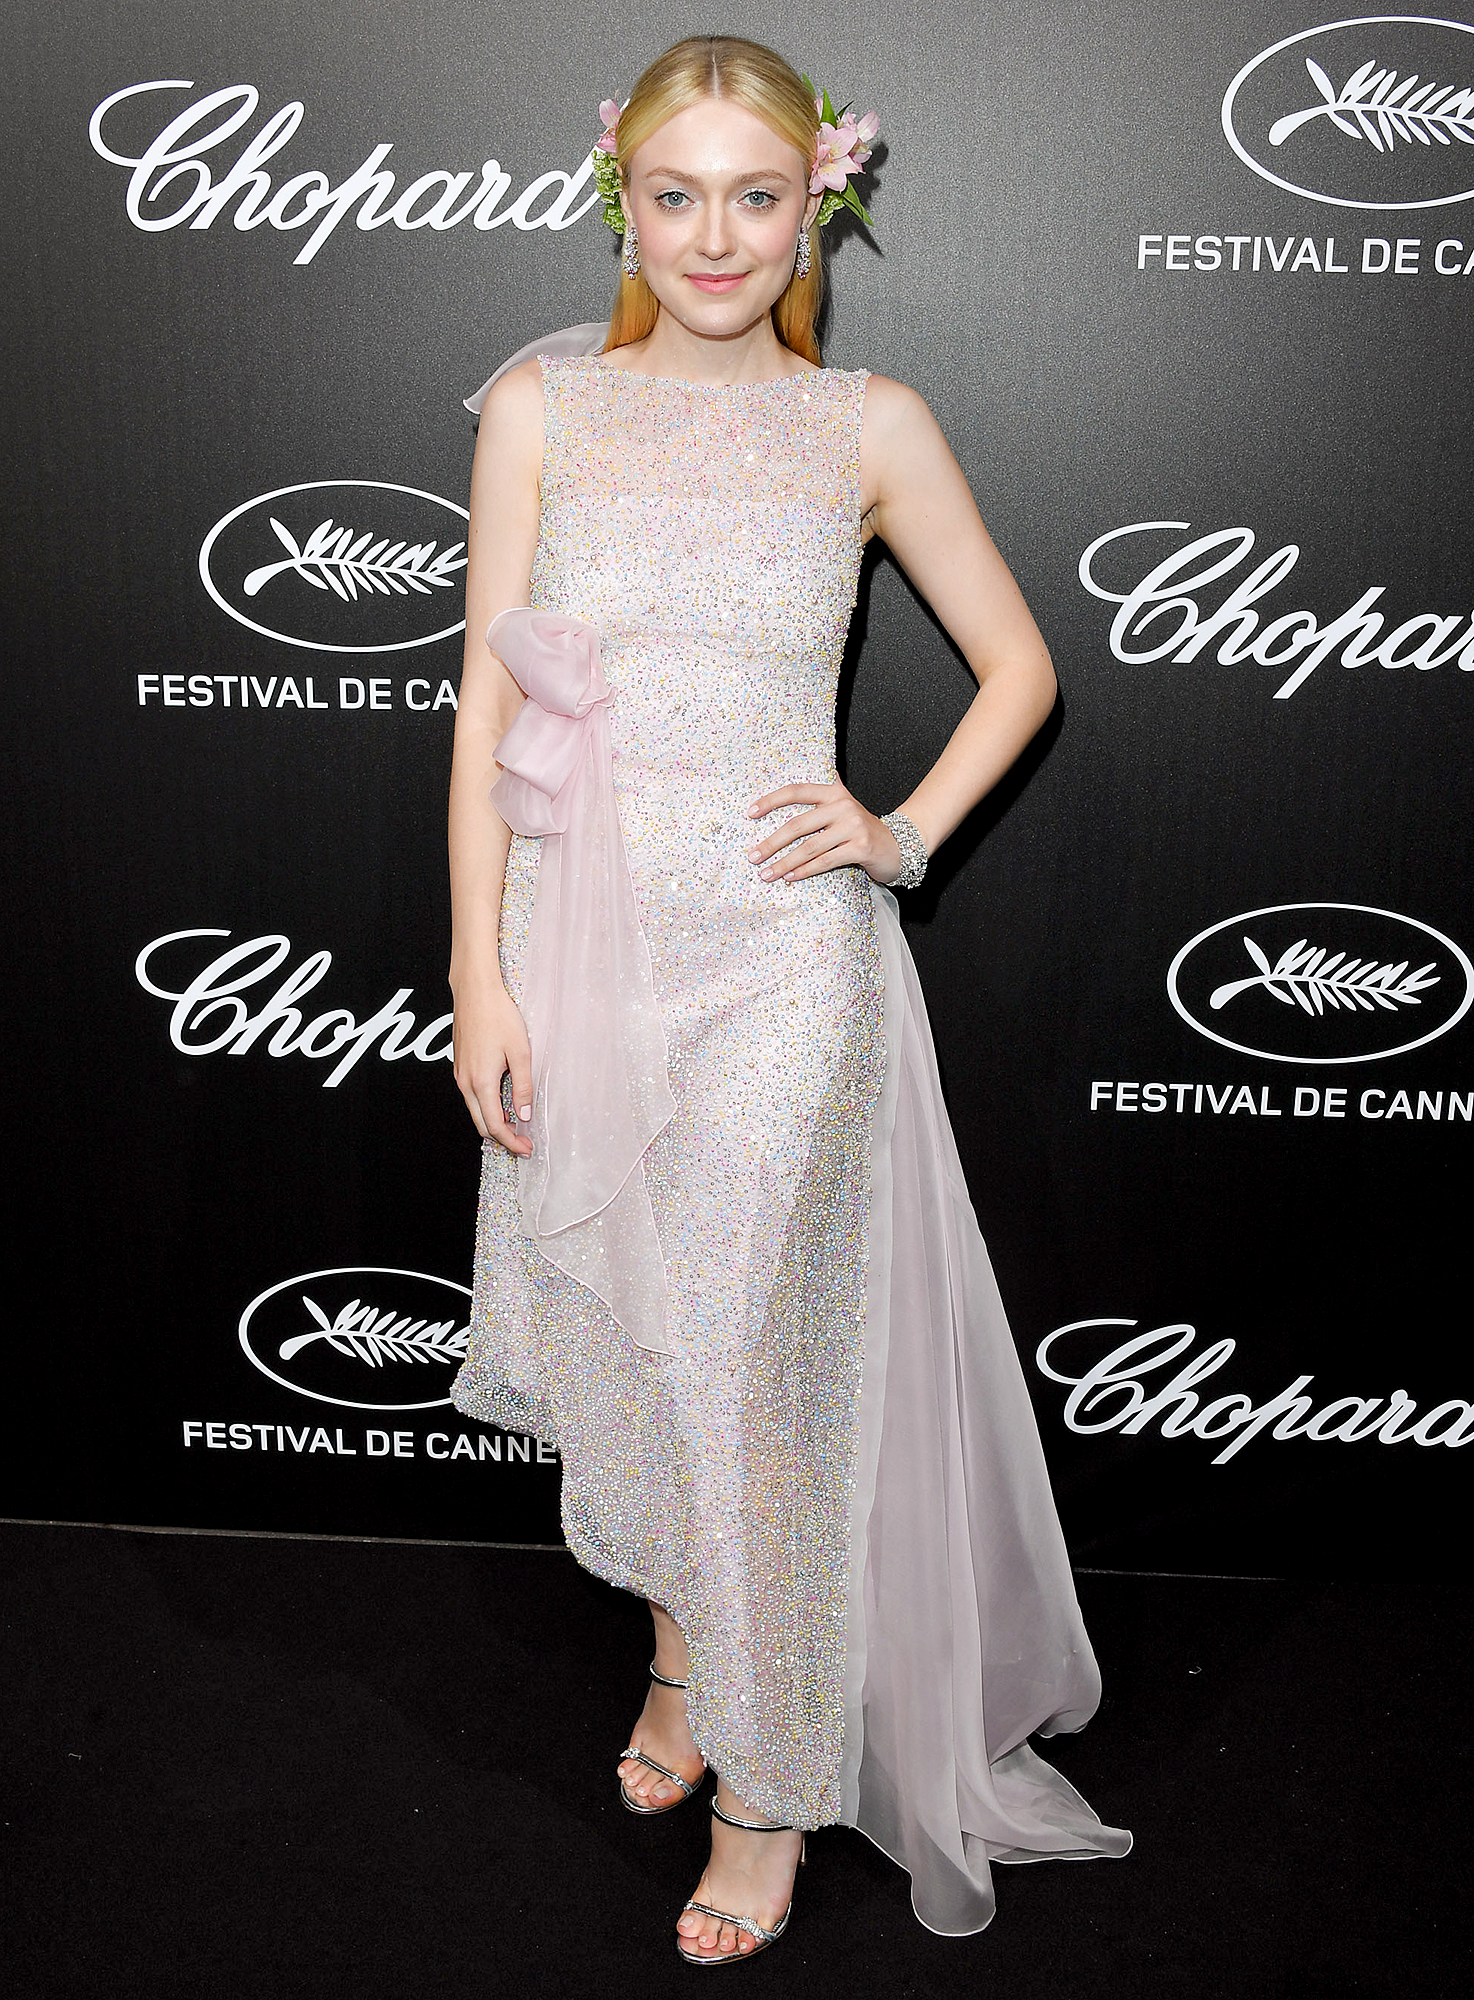 Dakota-Fanning - CANNES, FRANCE – MAY 20: Dakota Fanning attends the The Chopard Trophy event during the 72nd annual Cannes Film Festival on May 20, 2019 in Cannes, France. (Photo by George Pimentel/WireImage)